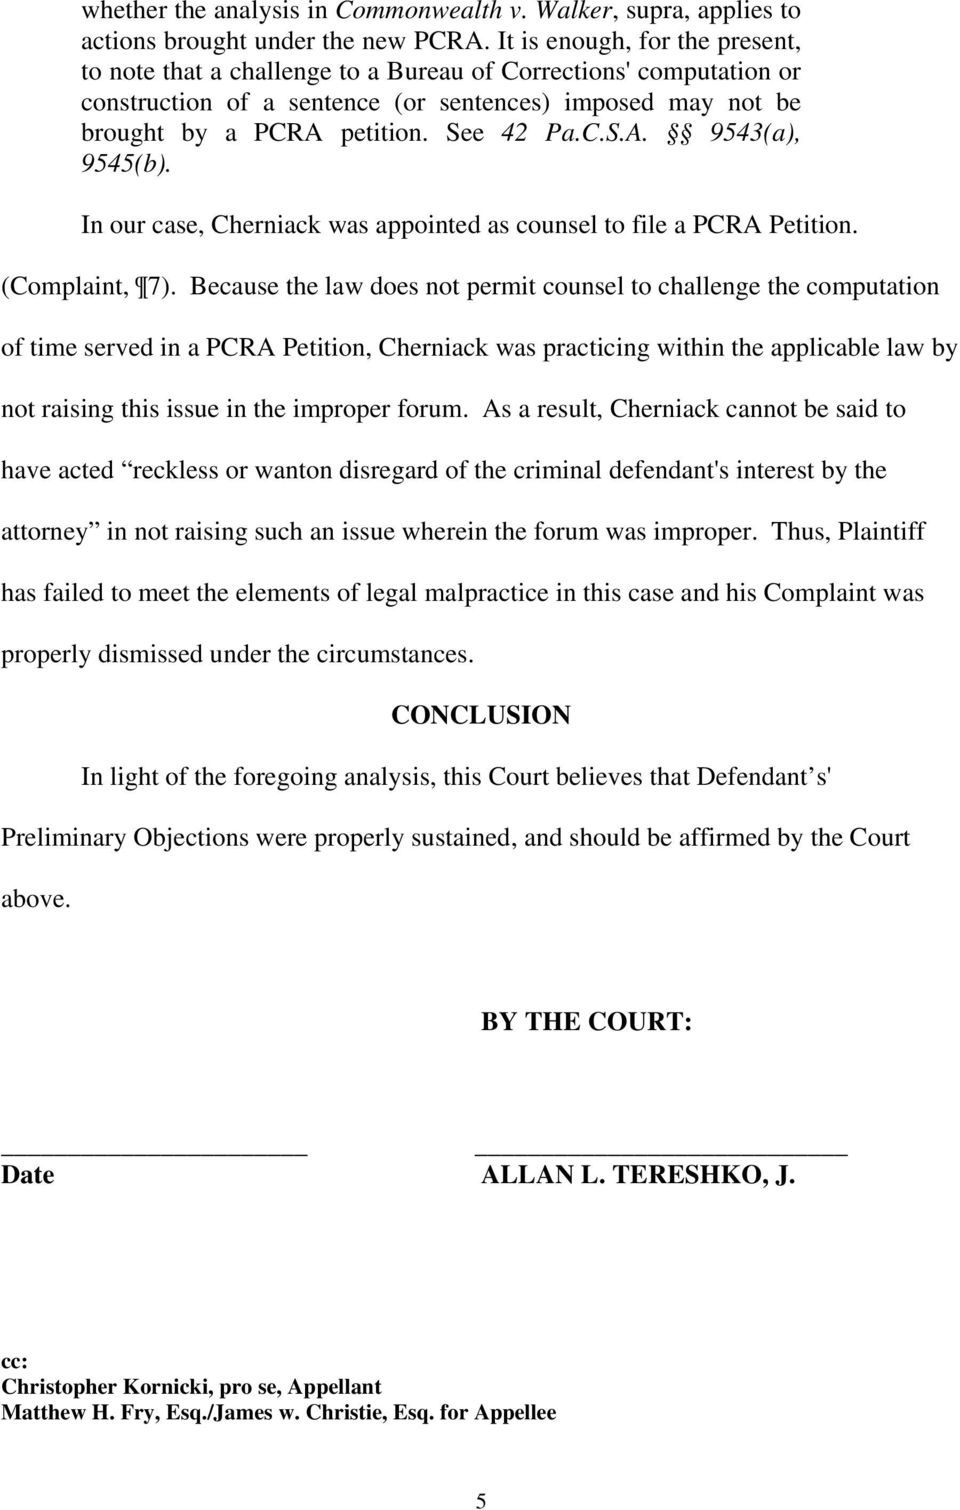 In our case, Cherniack was appointed as counsel to file a PCRA Petition. (Complaint, 7).